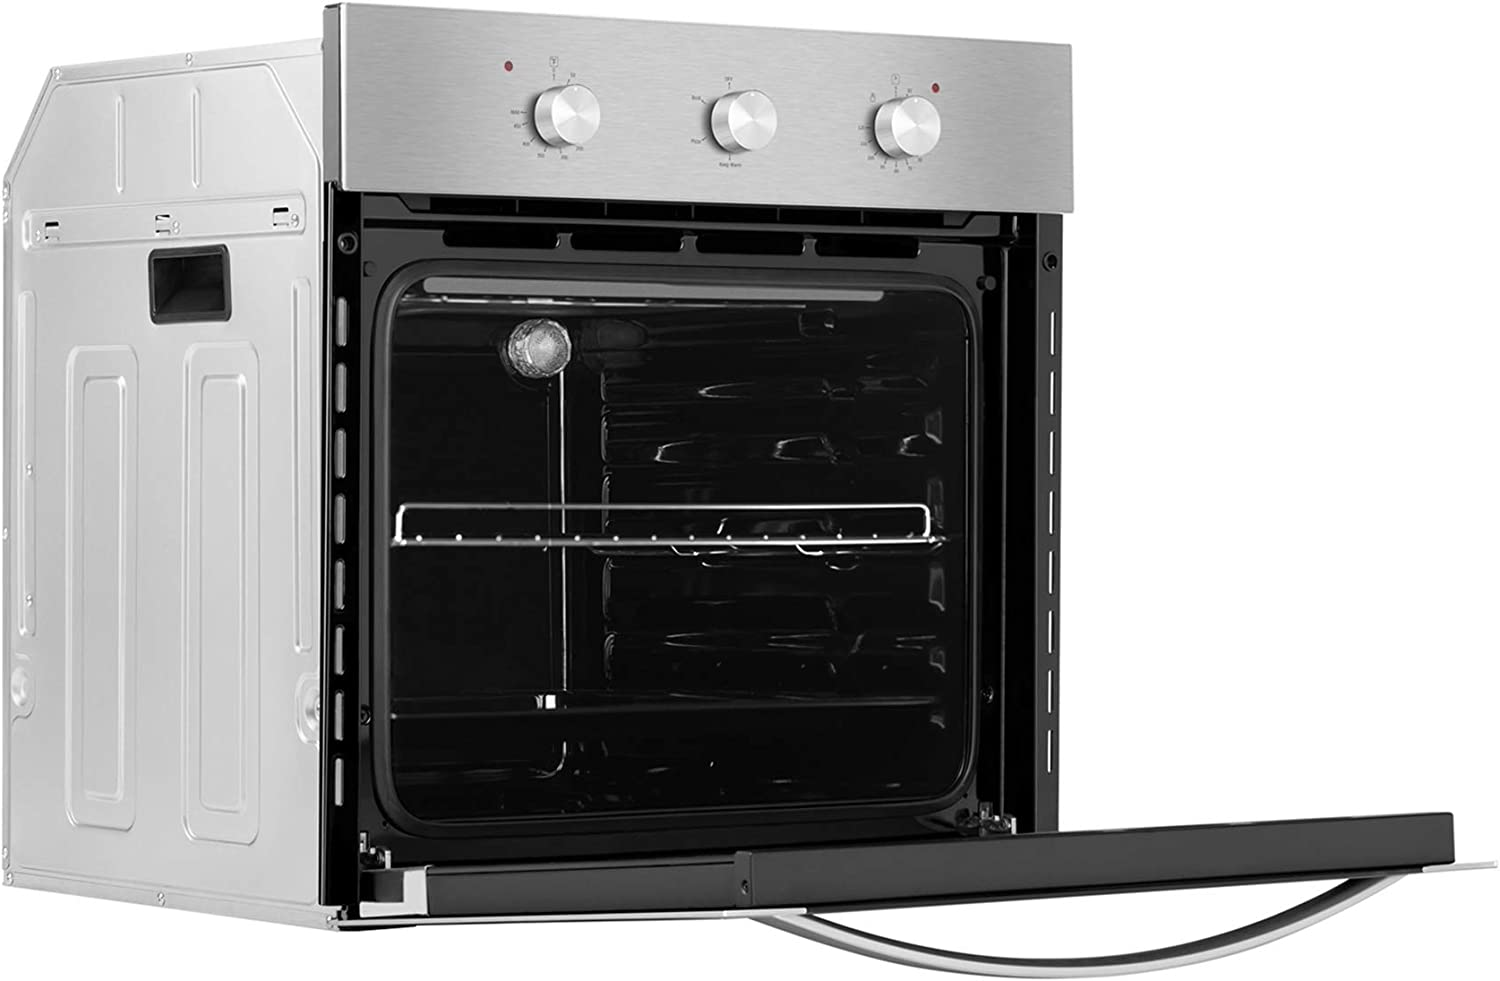 """Empava 24\"""" Electric Single Wall Oven with Basic Broil/Bake Functions Mechanical Knobs Control in Stainless Steel, A01, Silver 71l-0WPOBrLSL1500_"""